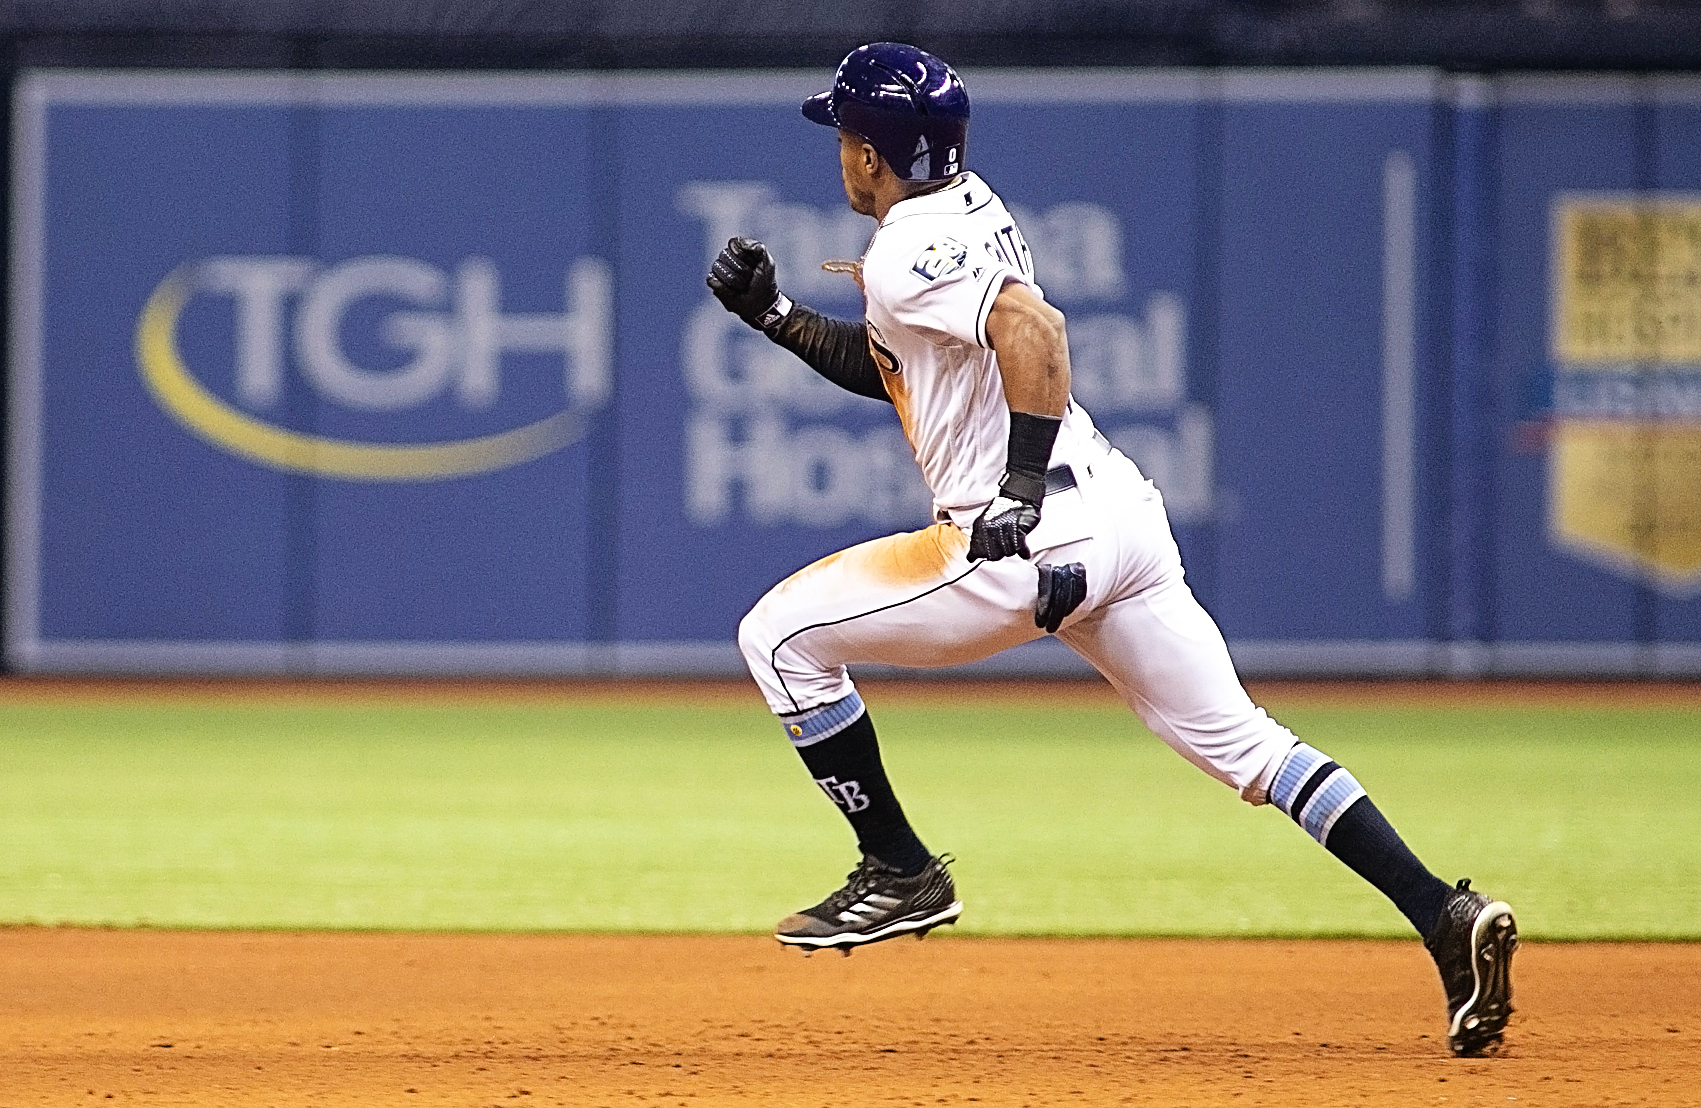 Smith doubles in the eighth for the Rays./CARMEN MANDATO